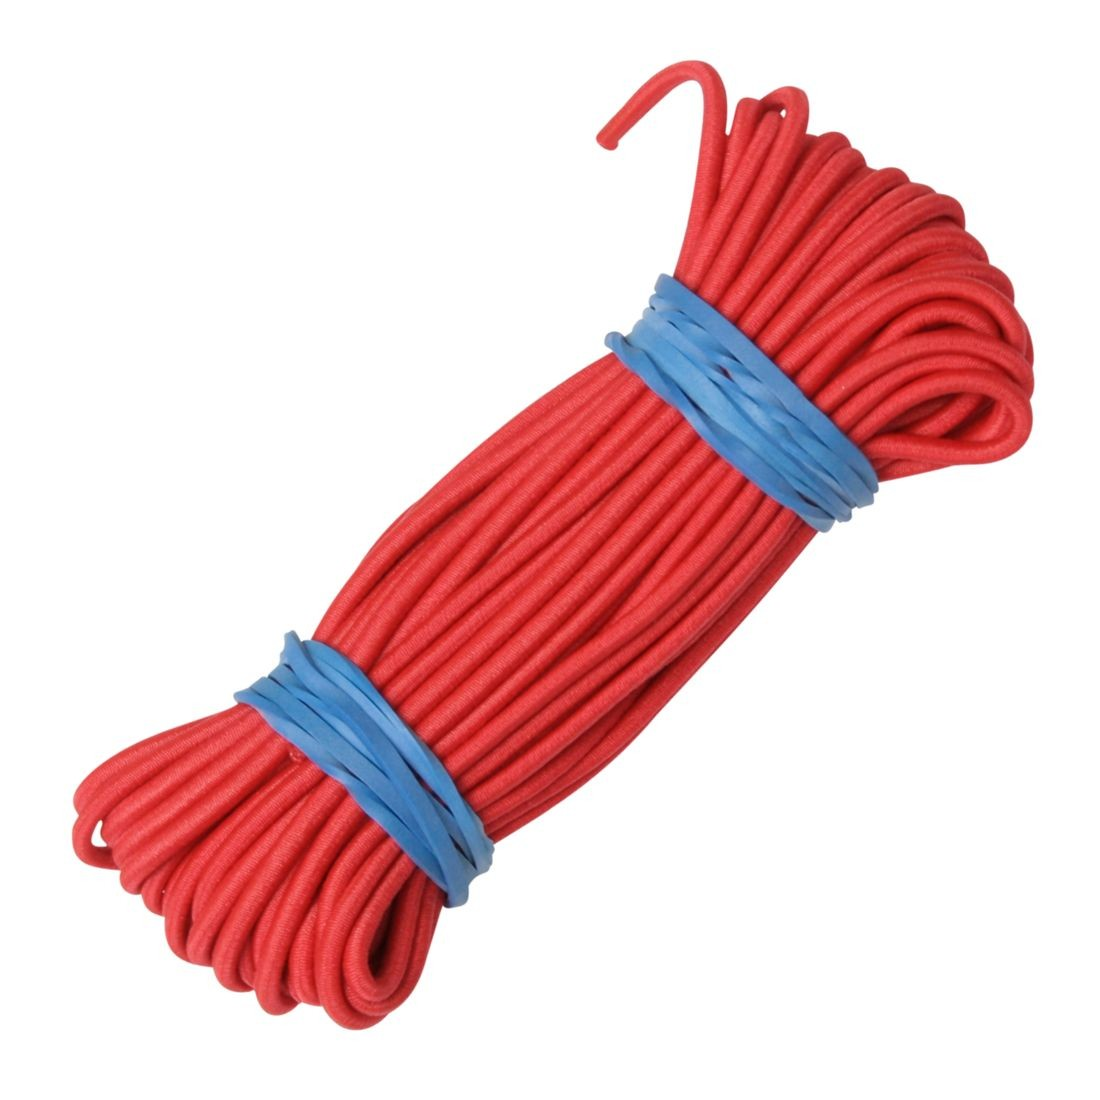 10T Outdoor Equipment - 10x22 ELASTIC CORD - Image 1  sc 1 st  C&ing-Outdoor.eu & Buy 10T Elastic Cord - Pole rubber 10 m x 2.2 mm tent pole rubber ...